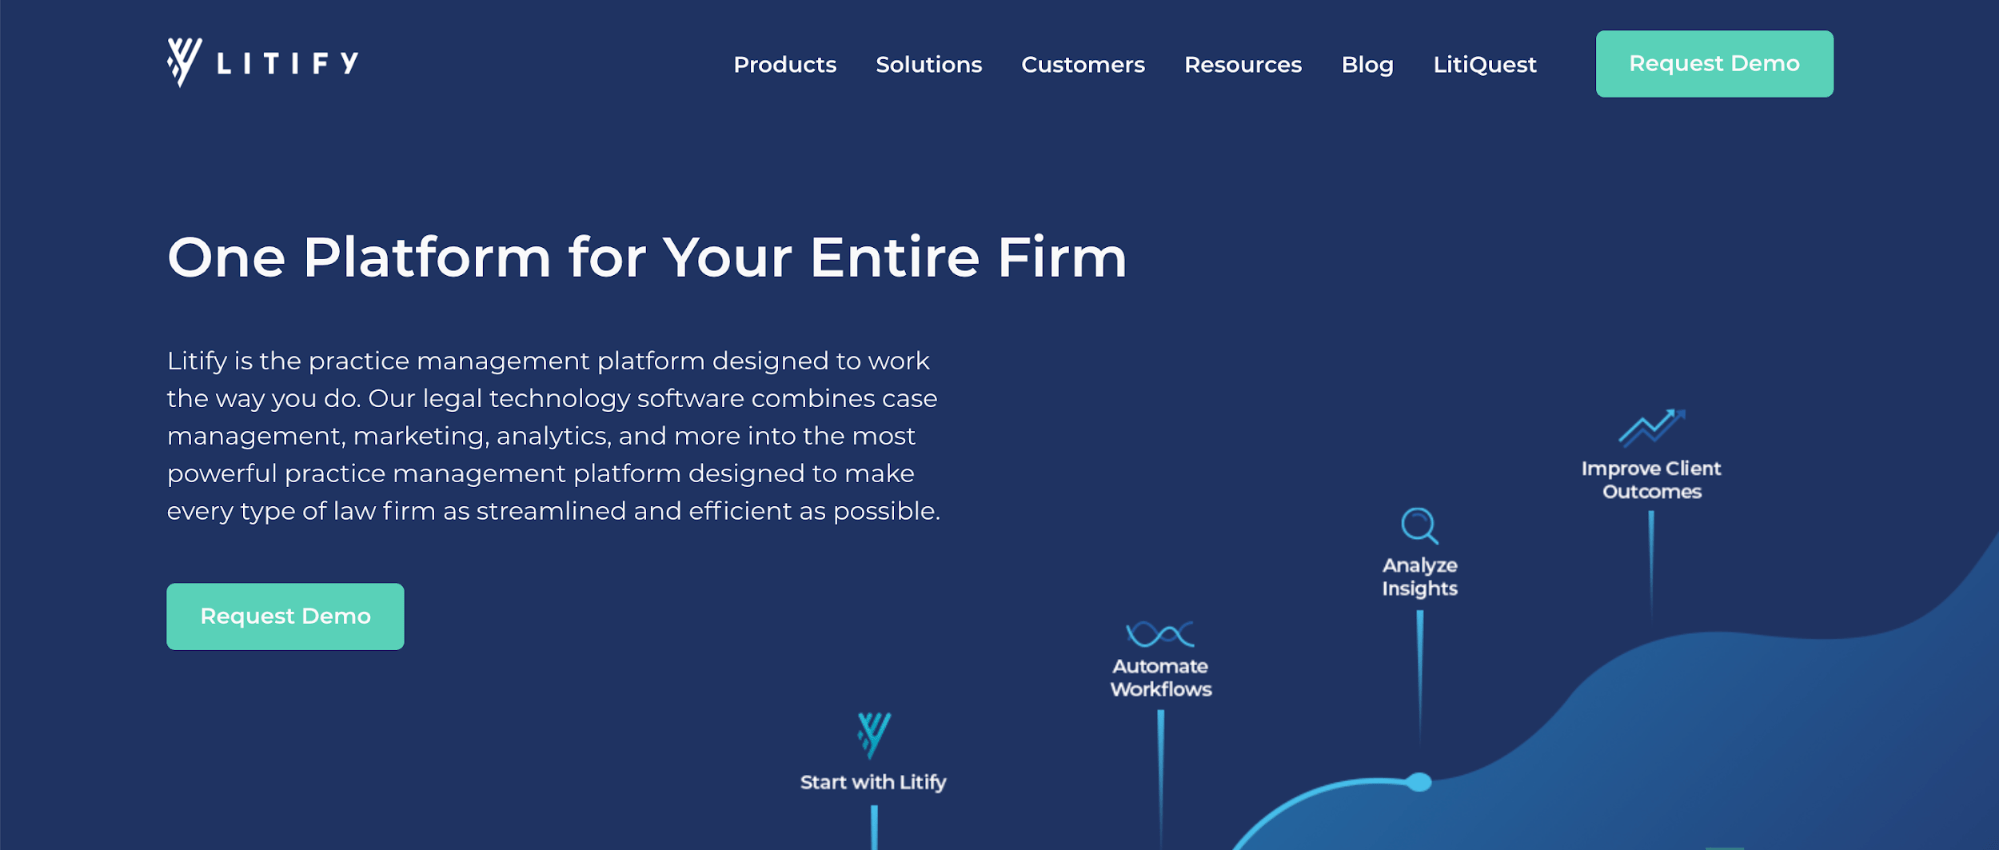 litify website homepage